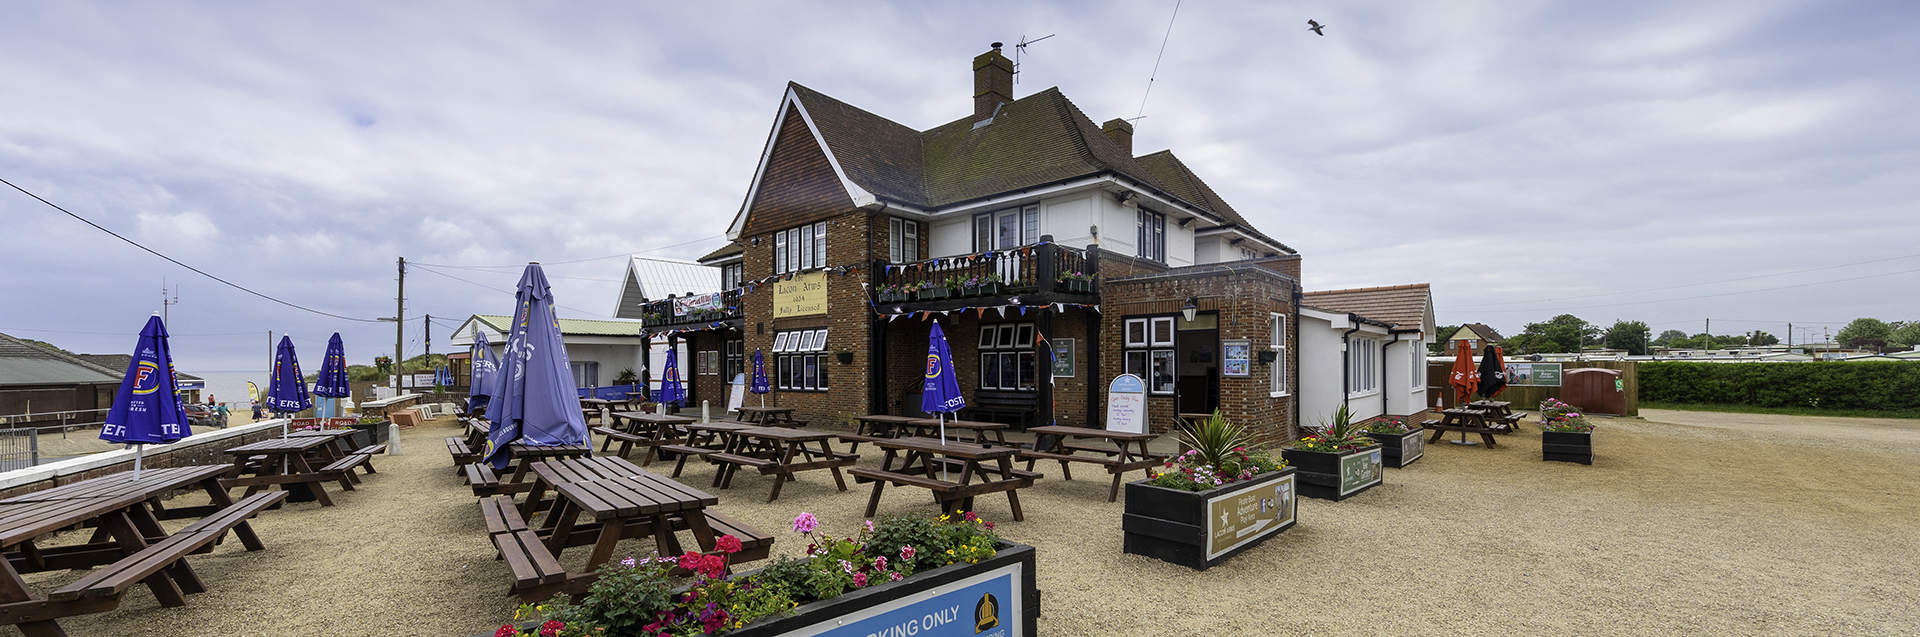 Lacon Arms Reopens